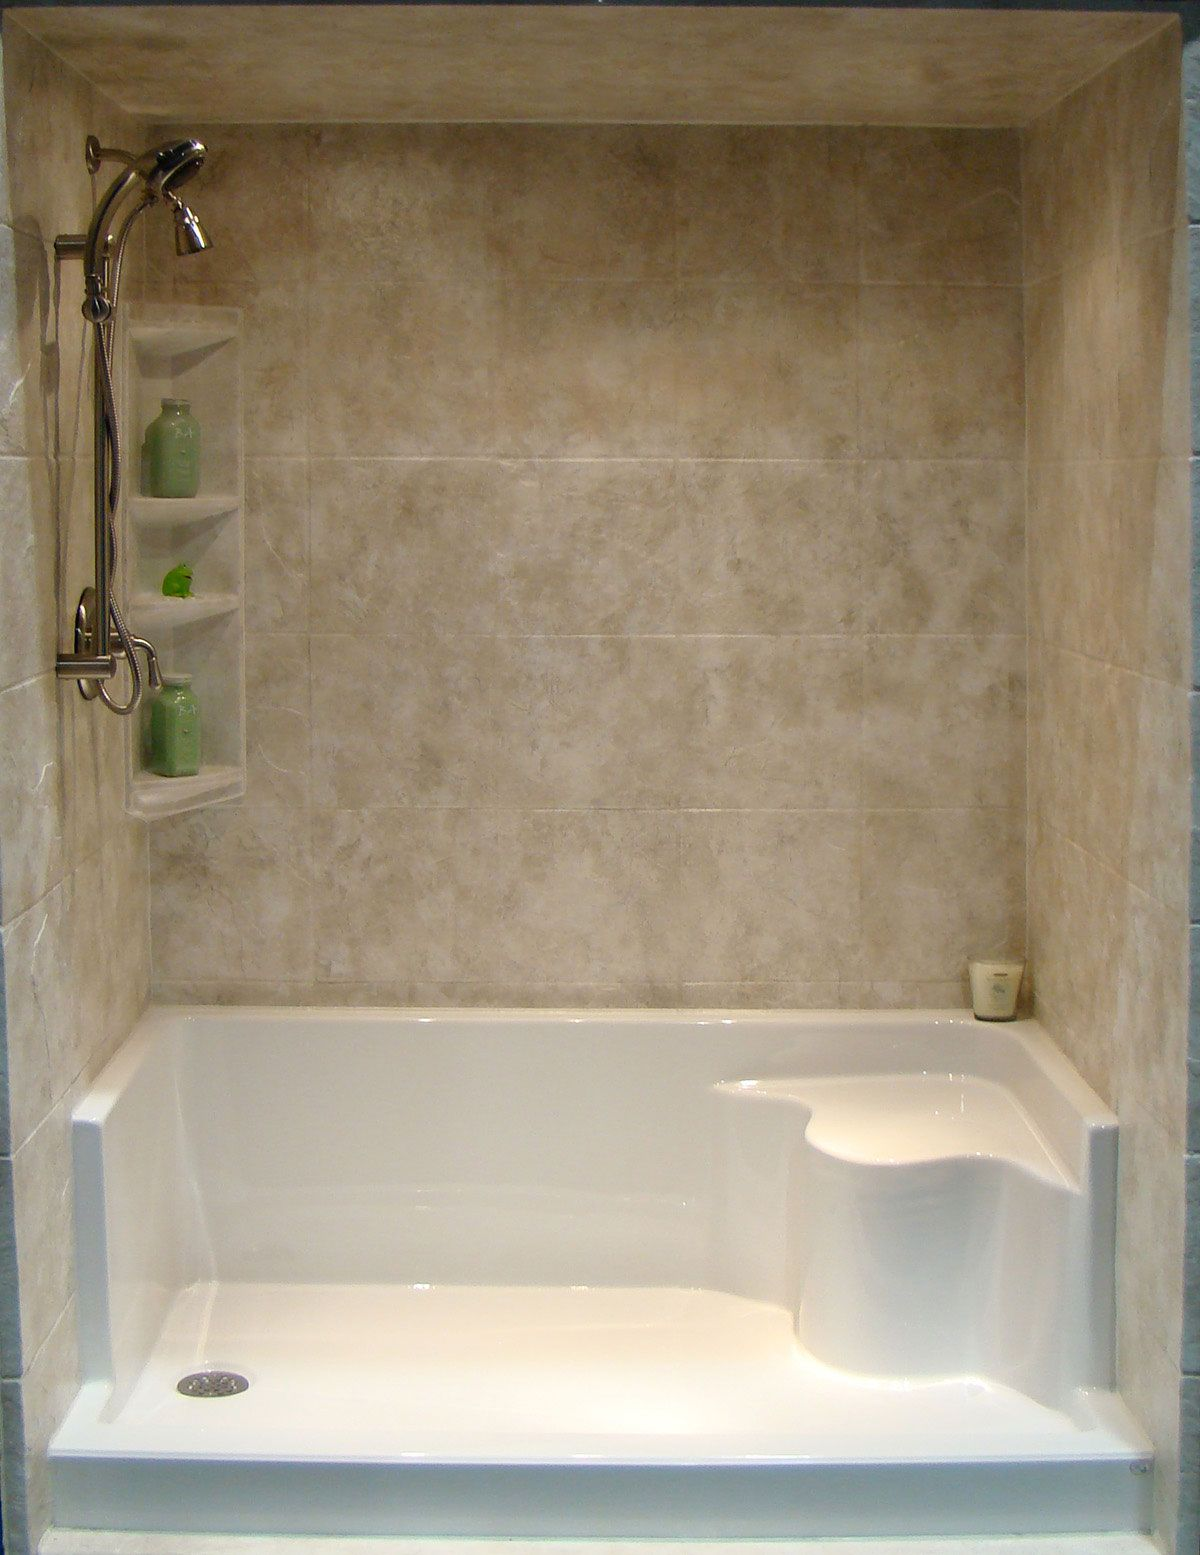 How To Replace A Tub With Walk In Shower Tcworks Org